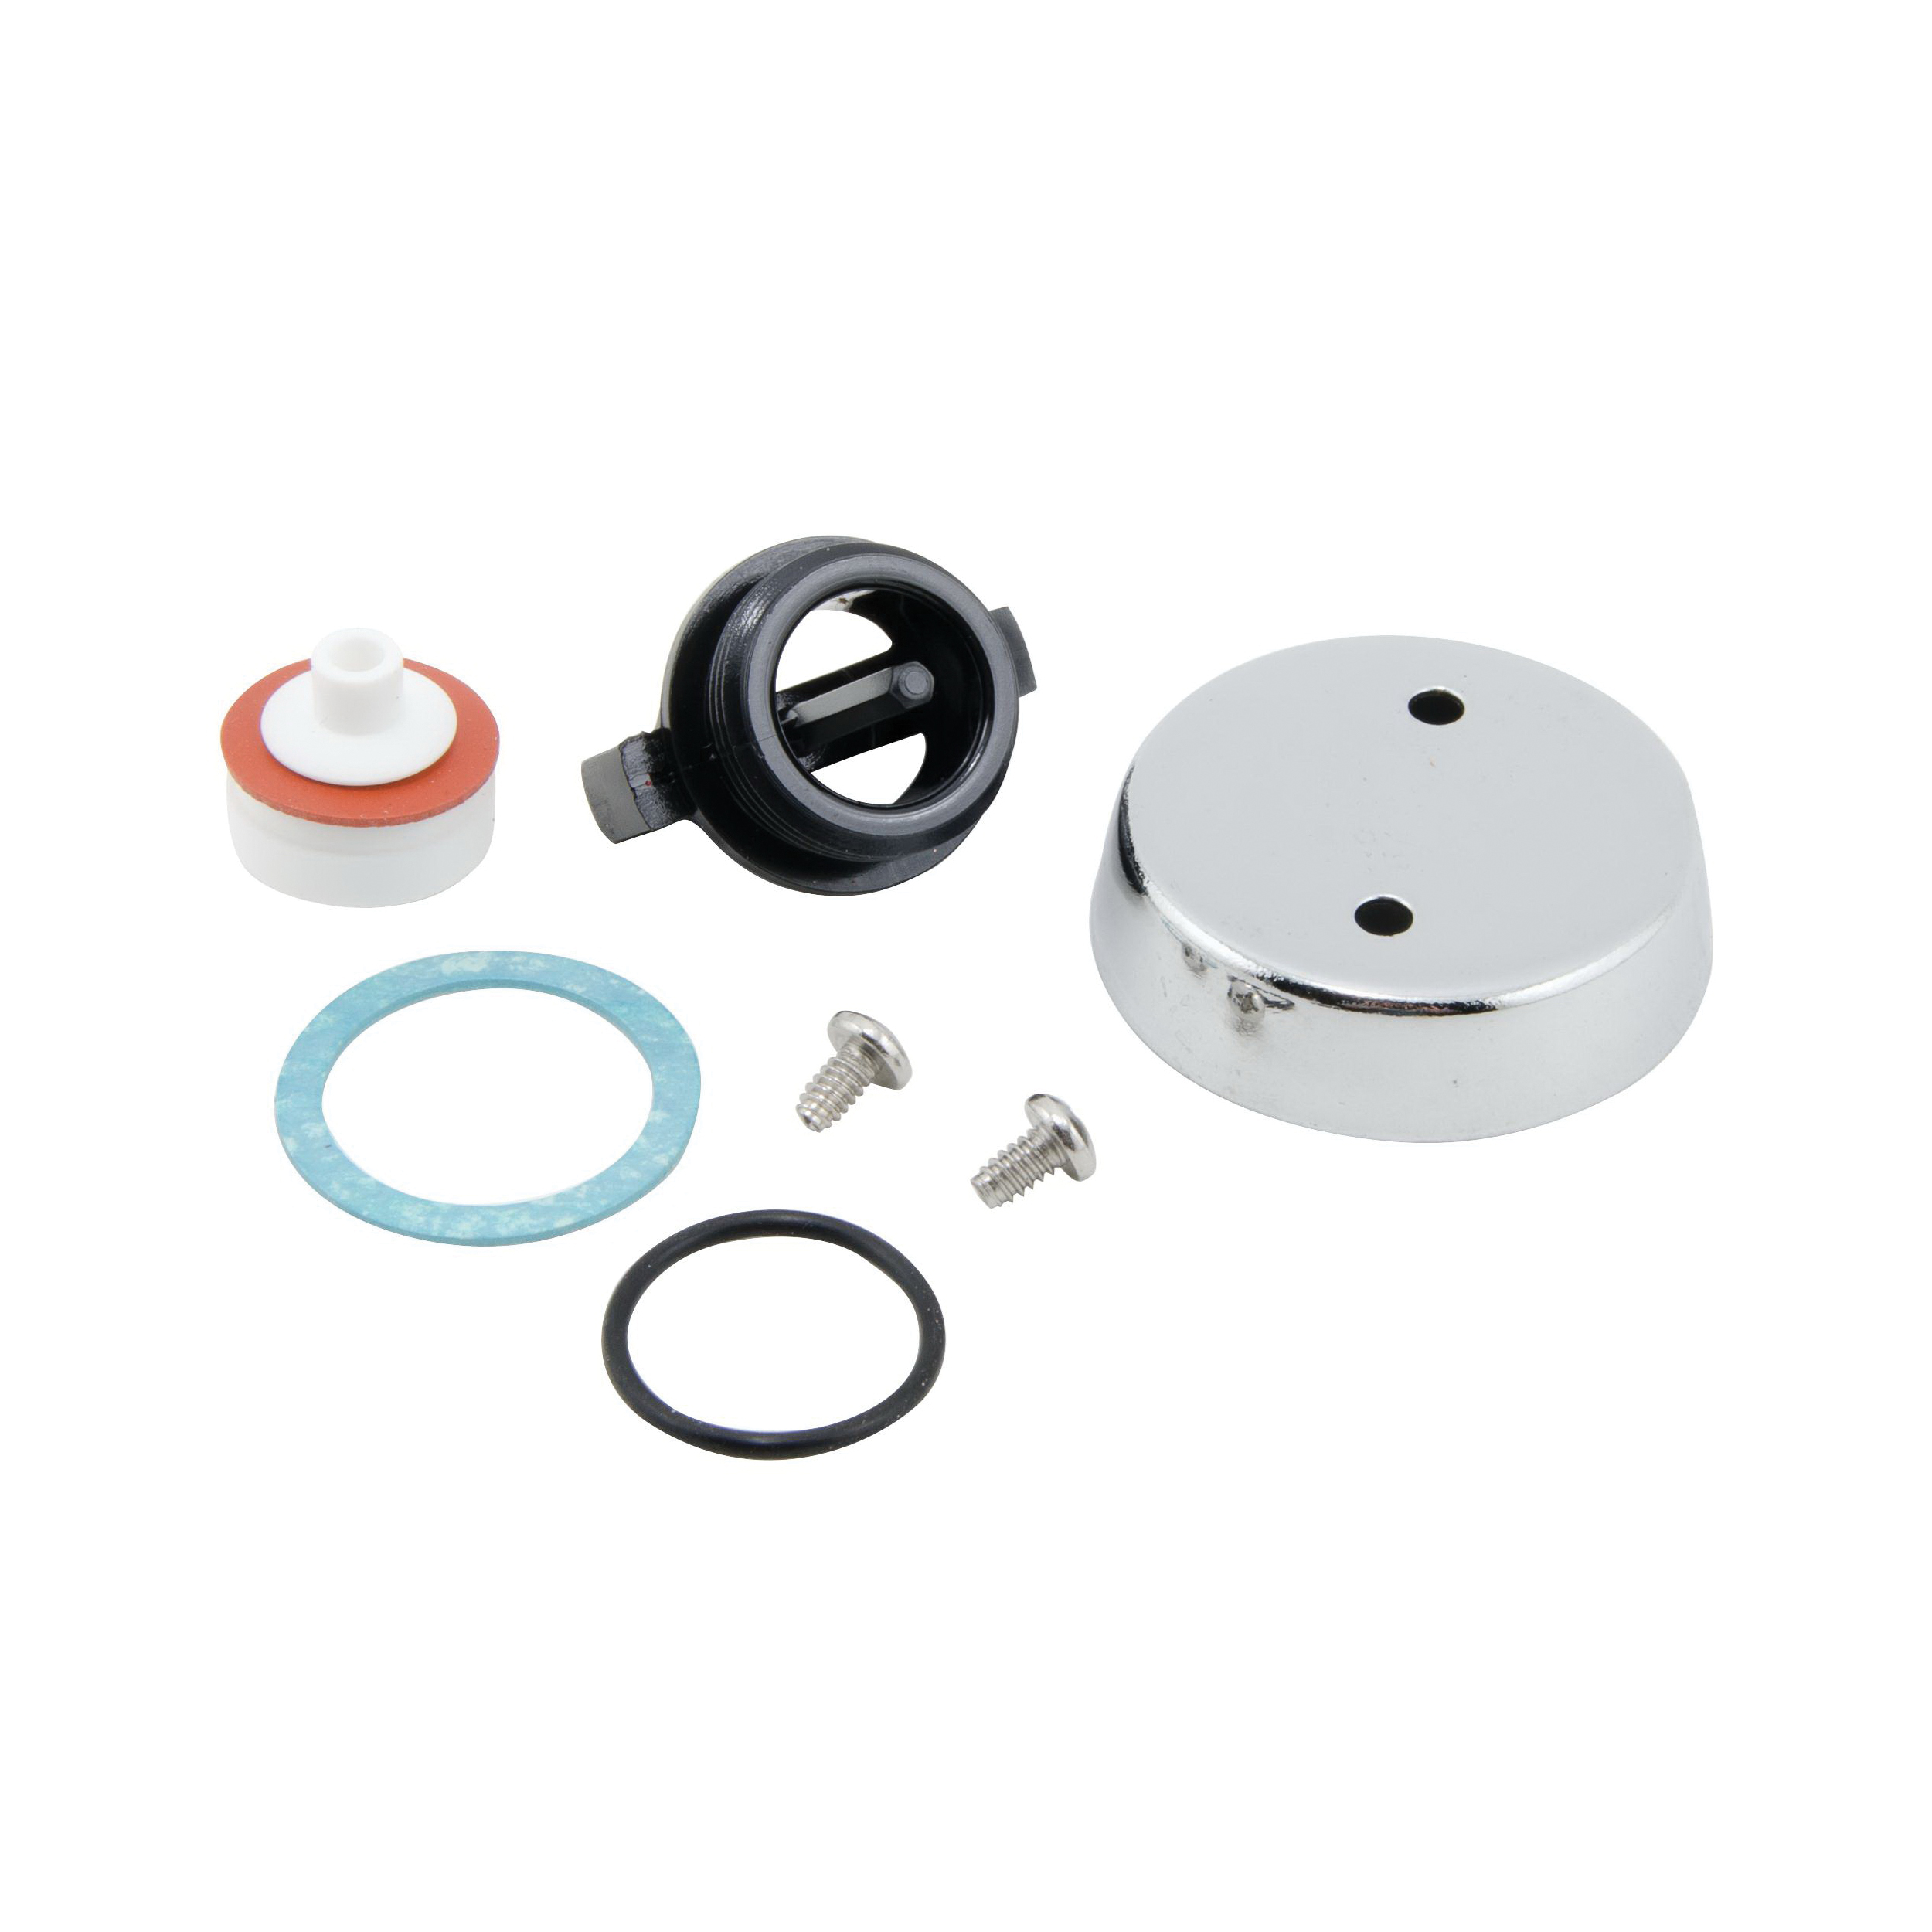 WATTS® 0887164 Total Repair Kit, For Use With 288A Series 1/4 to 3/8 in Hot or Cold Water Anti-Siphon Vacuum Breaker